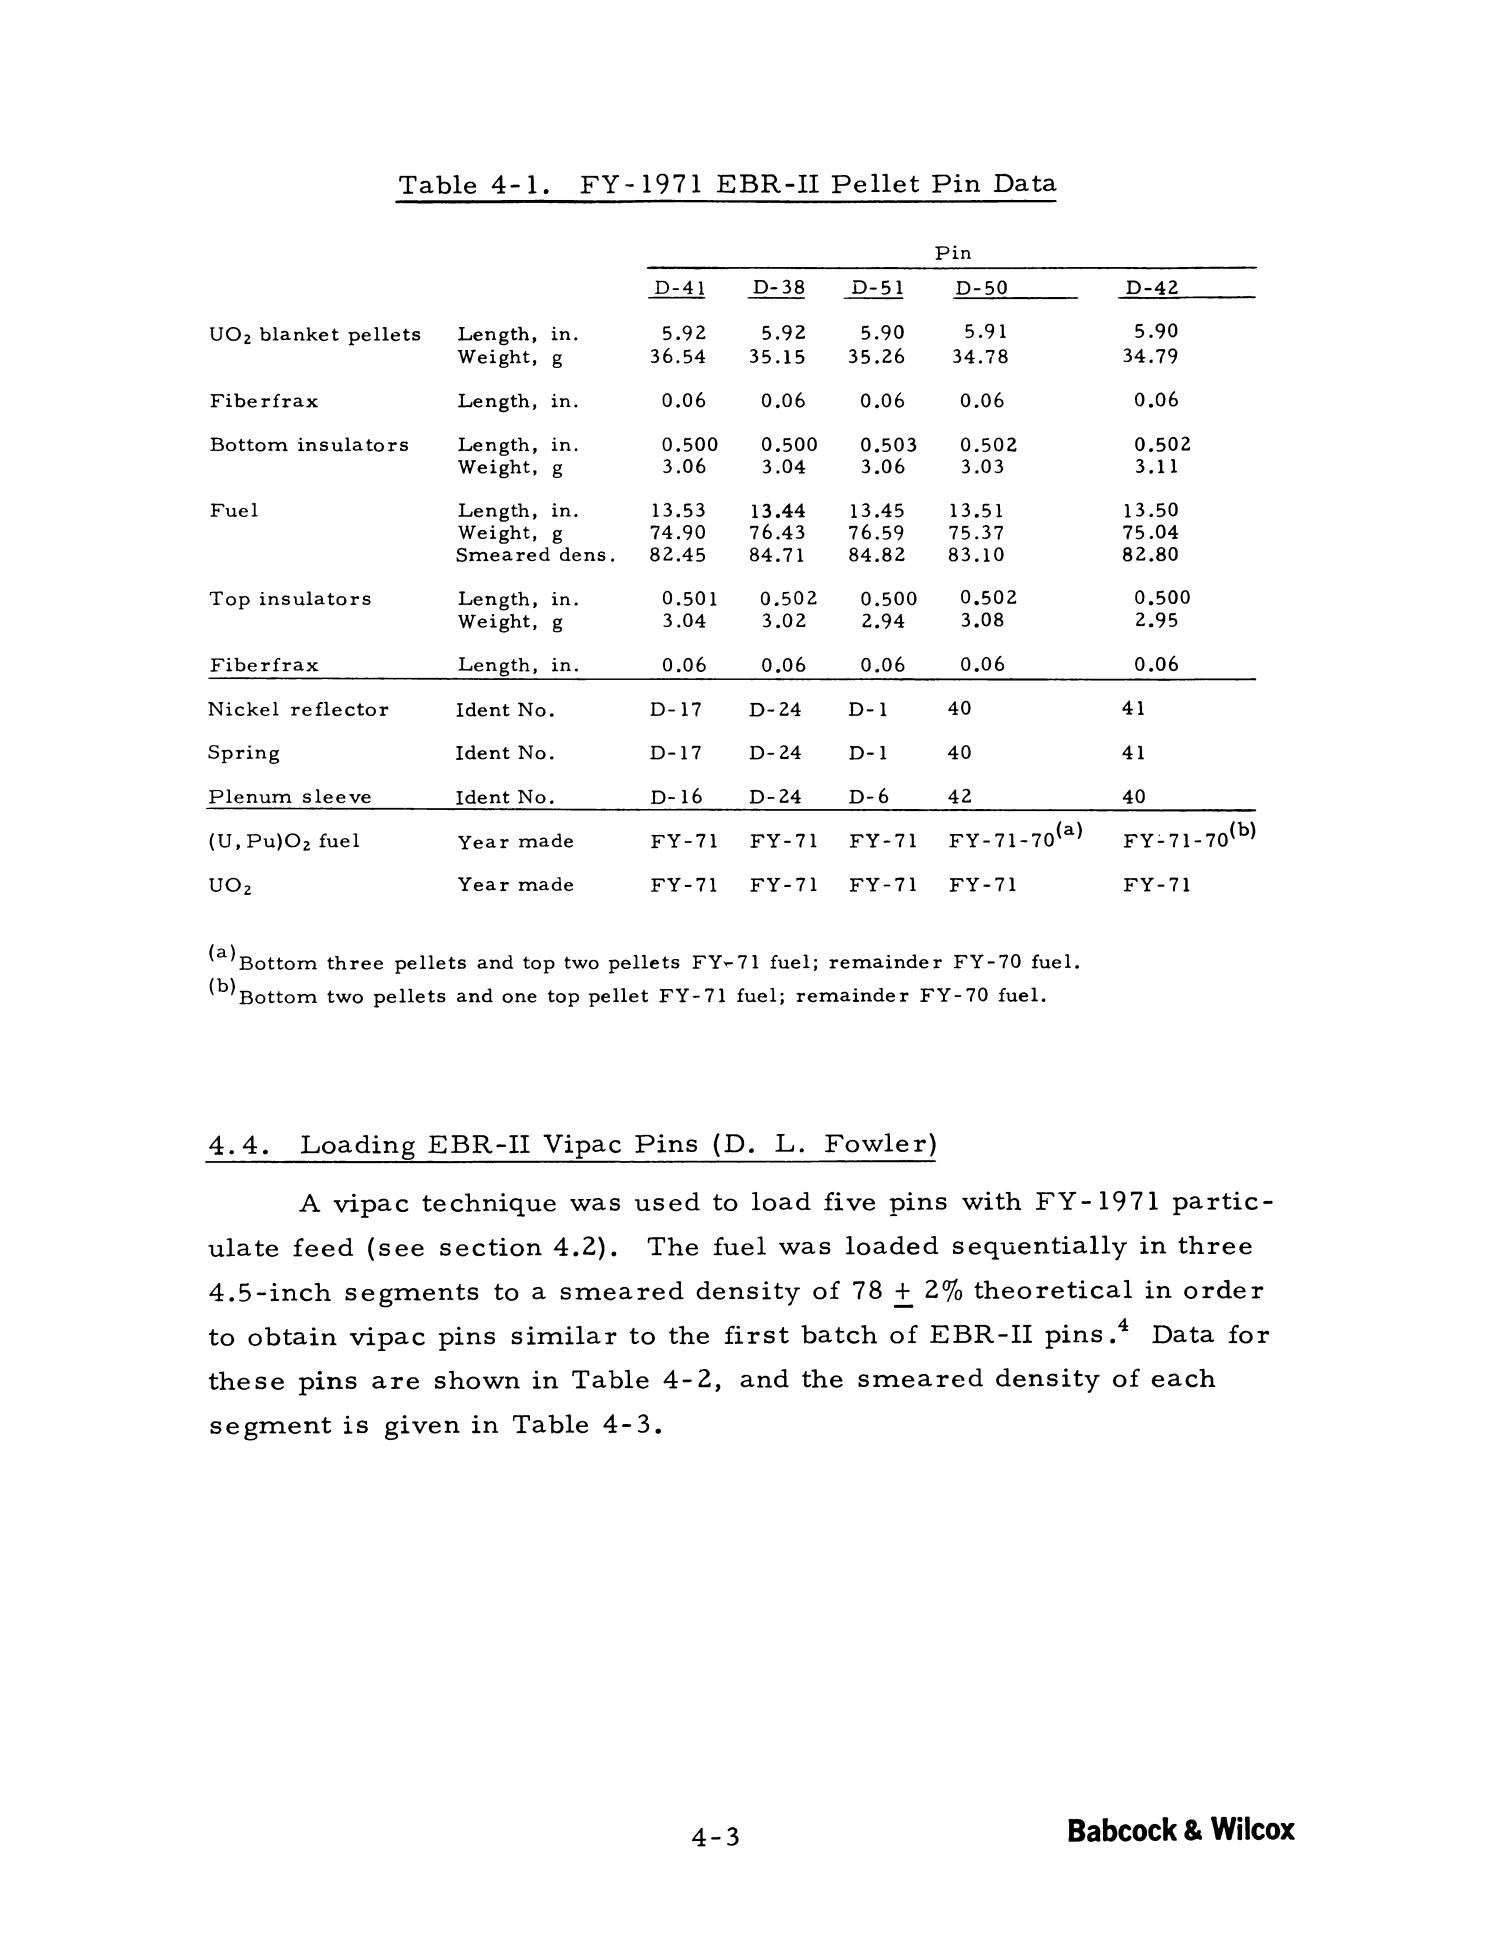 Gel-Addition Process Chemical Studies: Quarterly Progress Report Number 18, November 1970 - January 1971                                                                                                      4-3